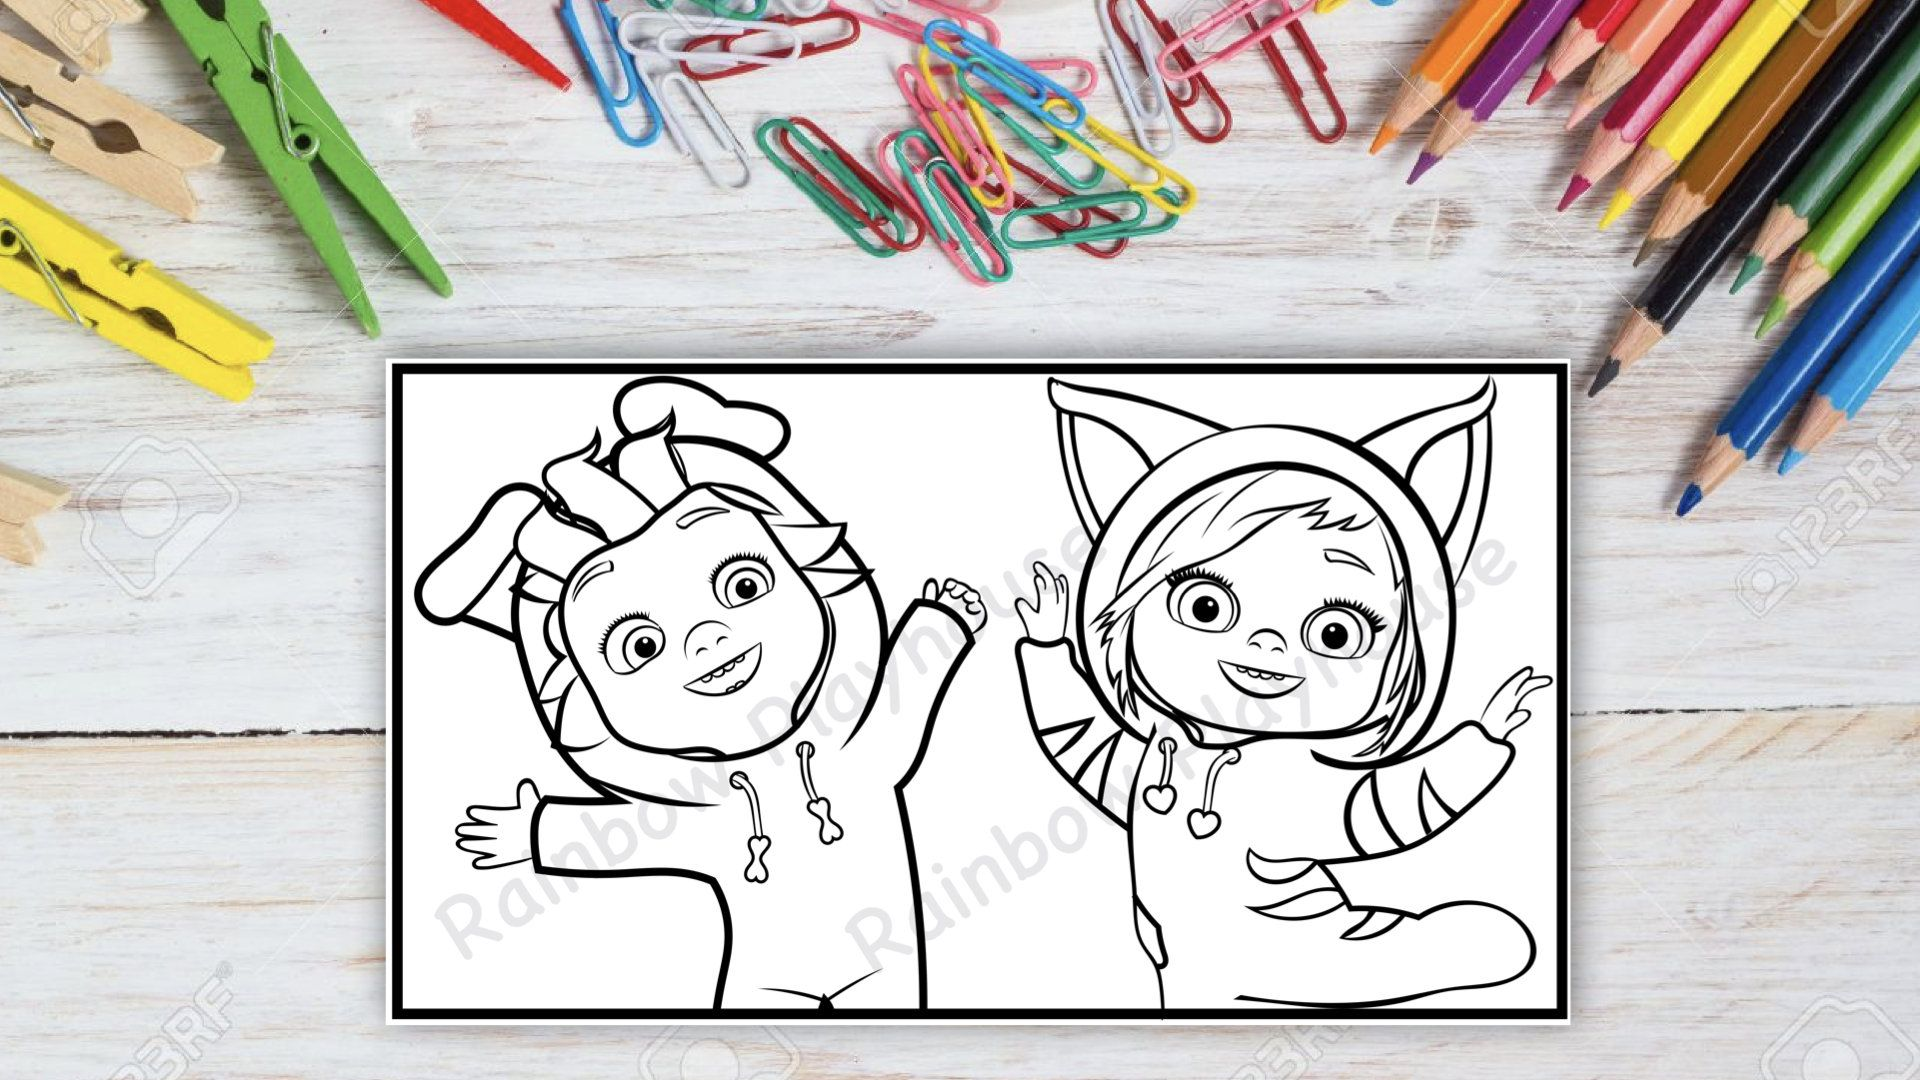 Set Of 3 Dave And Ava Printable Coloring Pages Great For Birthday Parties Dave And Ava Printable Coloring Printable Coloring Pages